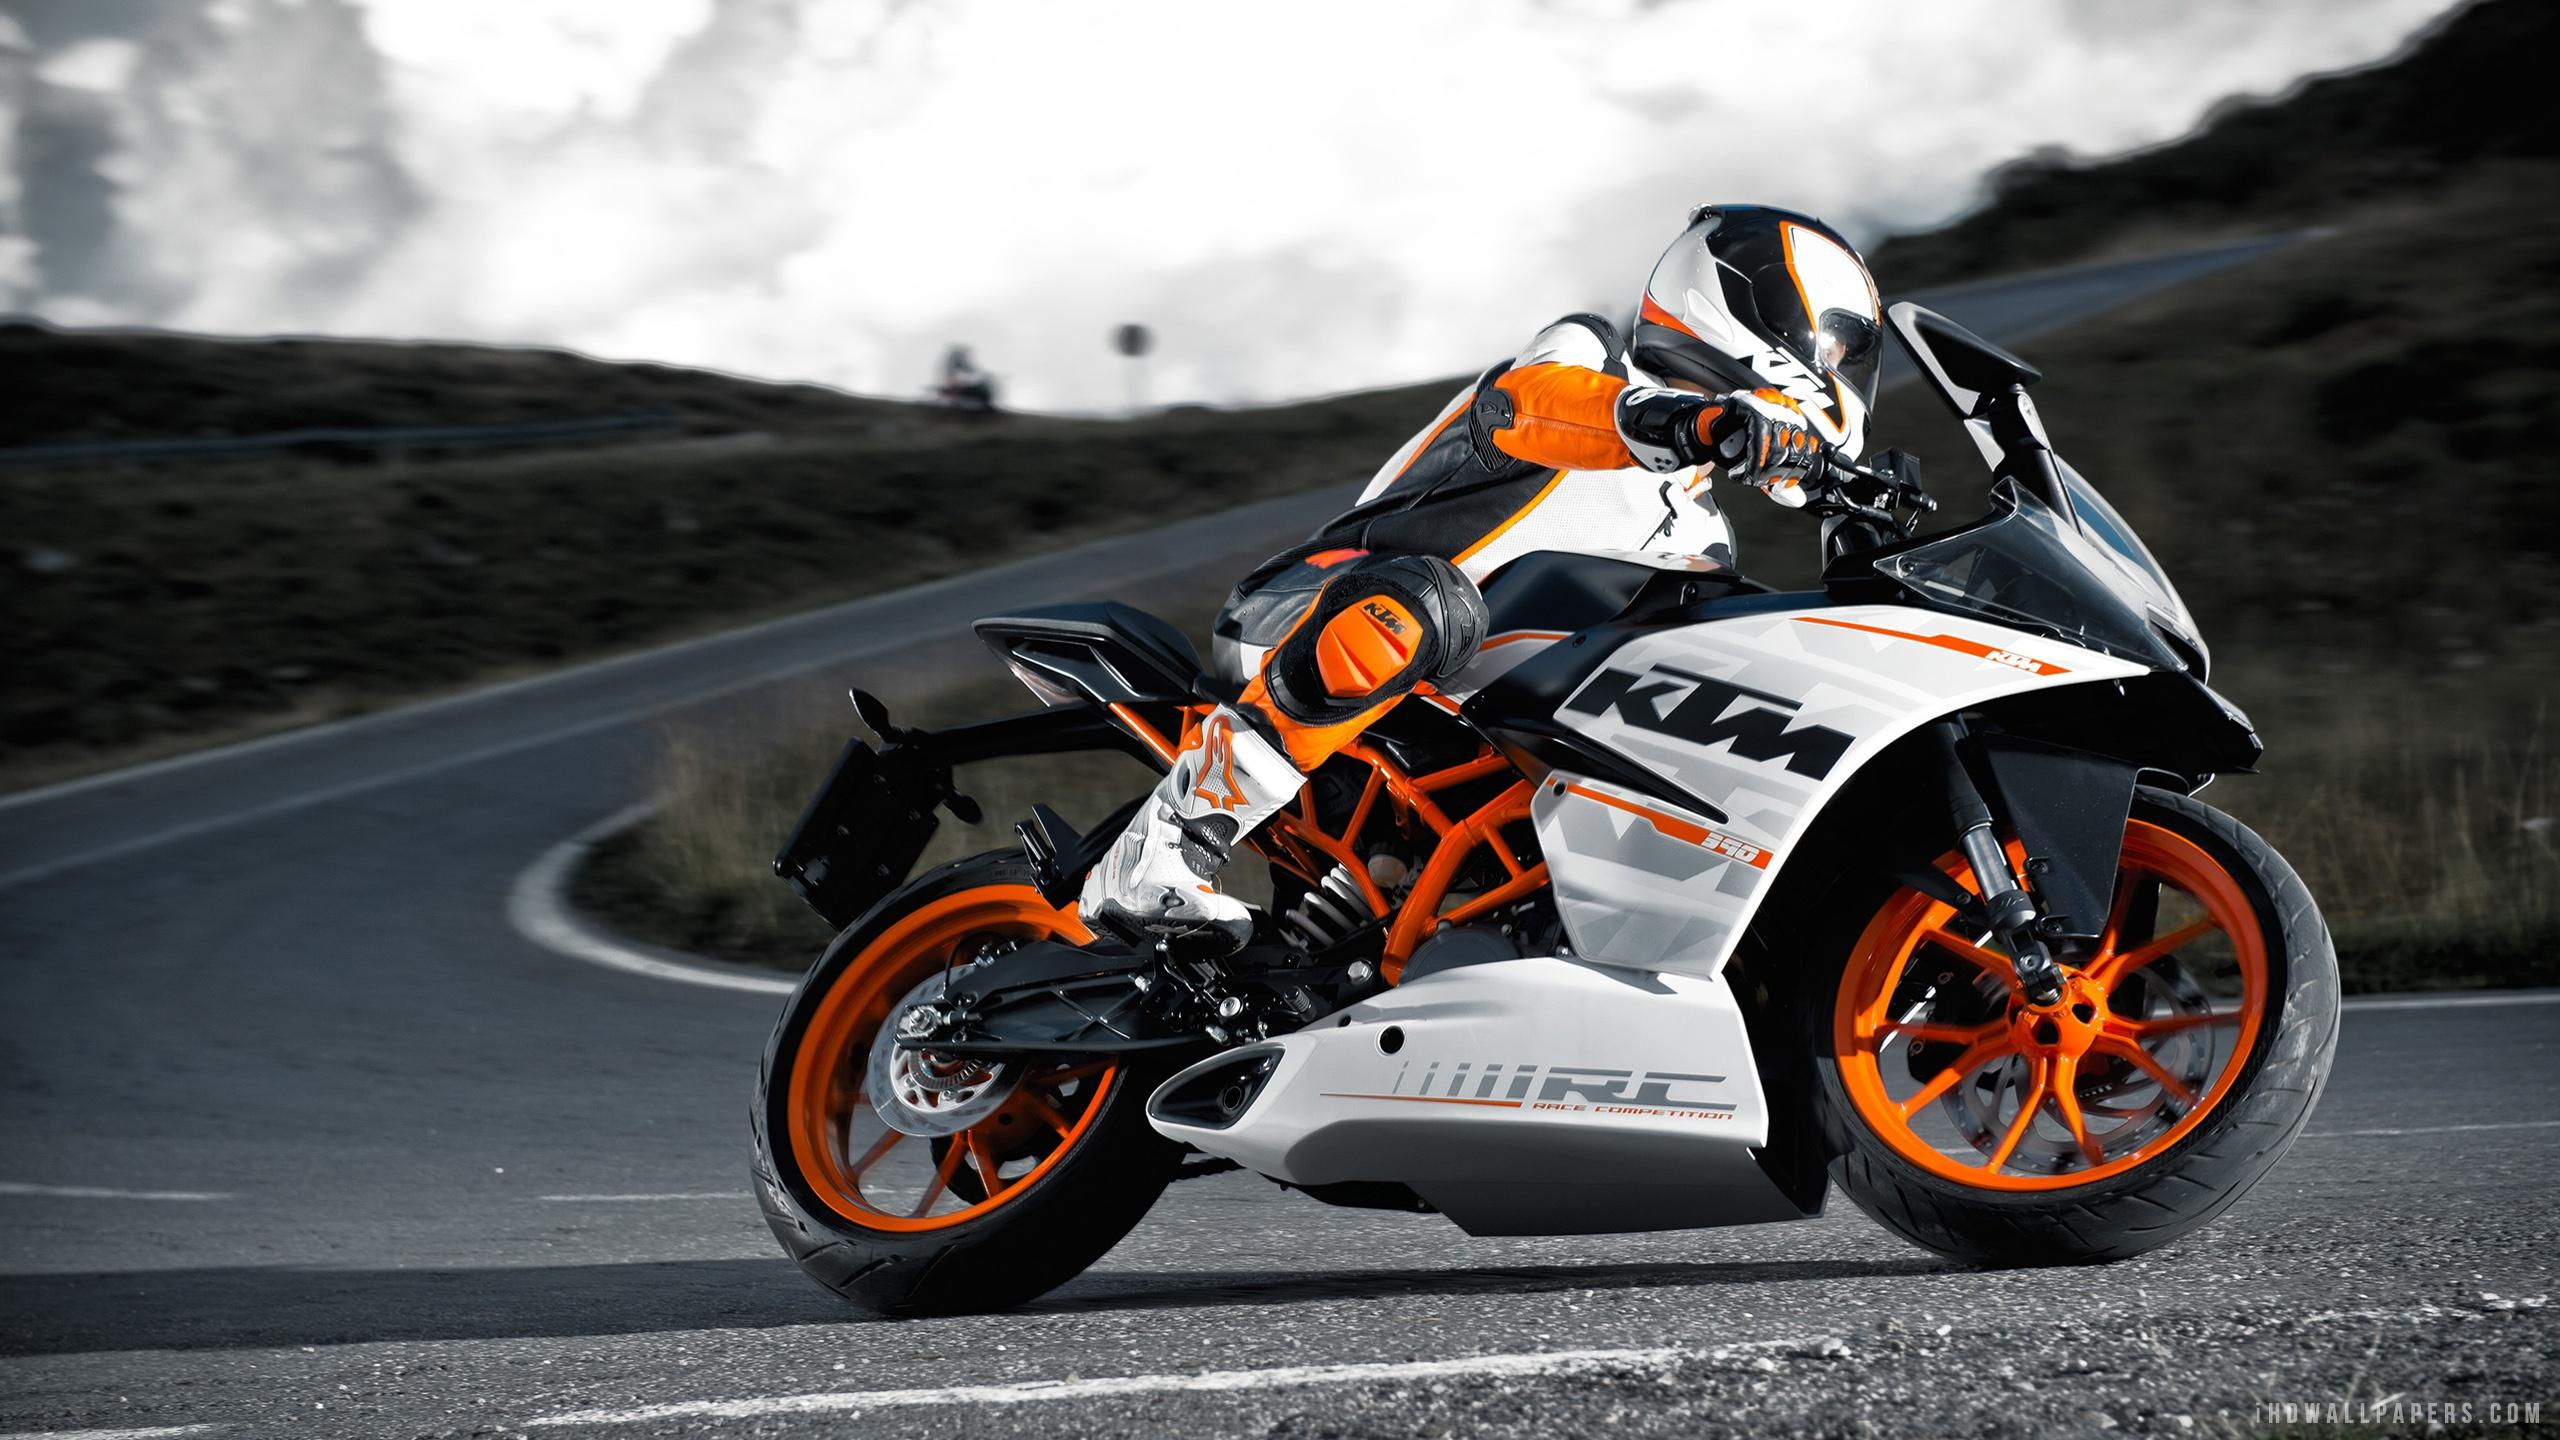 Ktm Rc 200 Hd 1080p Wallpapers Ktm Rc 200 Wallpaper Hd 2560x1440 Download Hd Wallpaper Wallpapertip